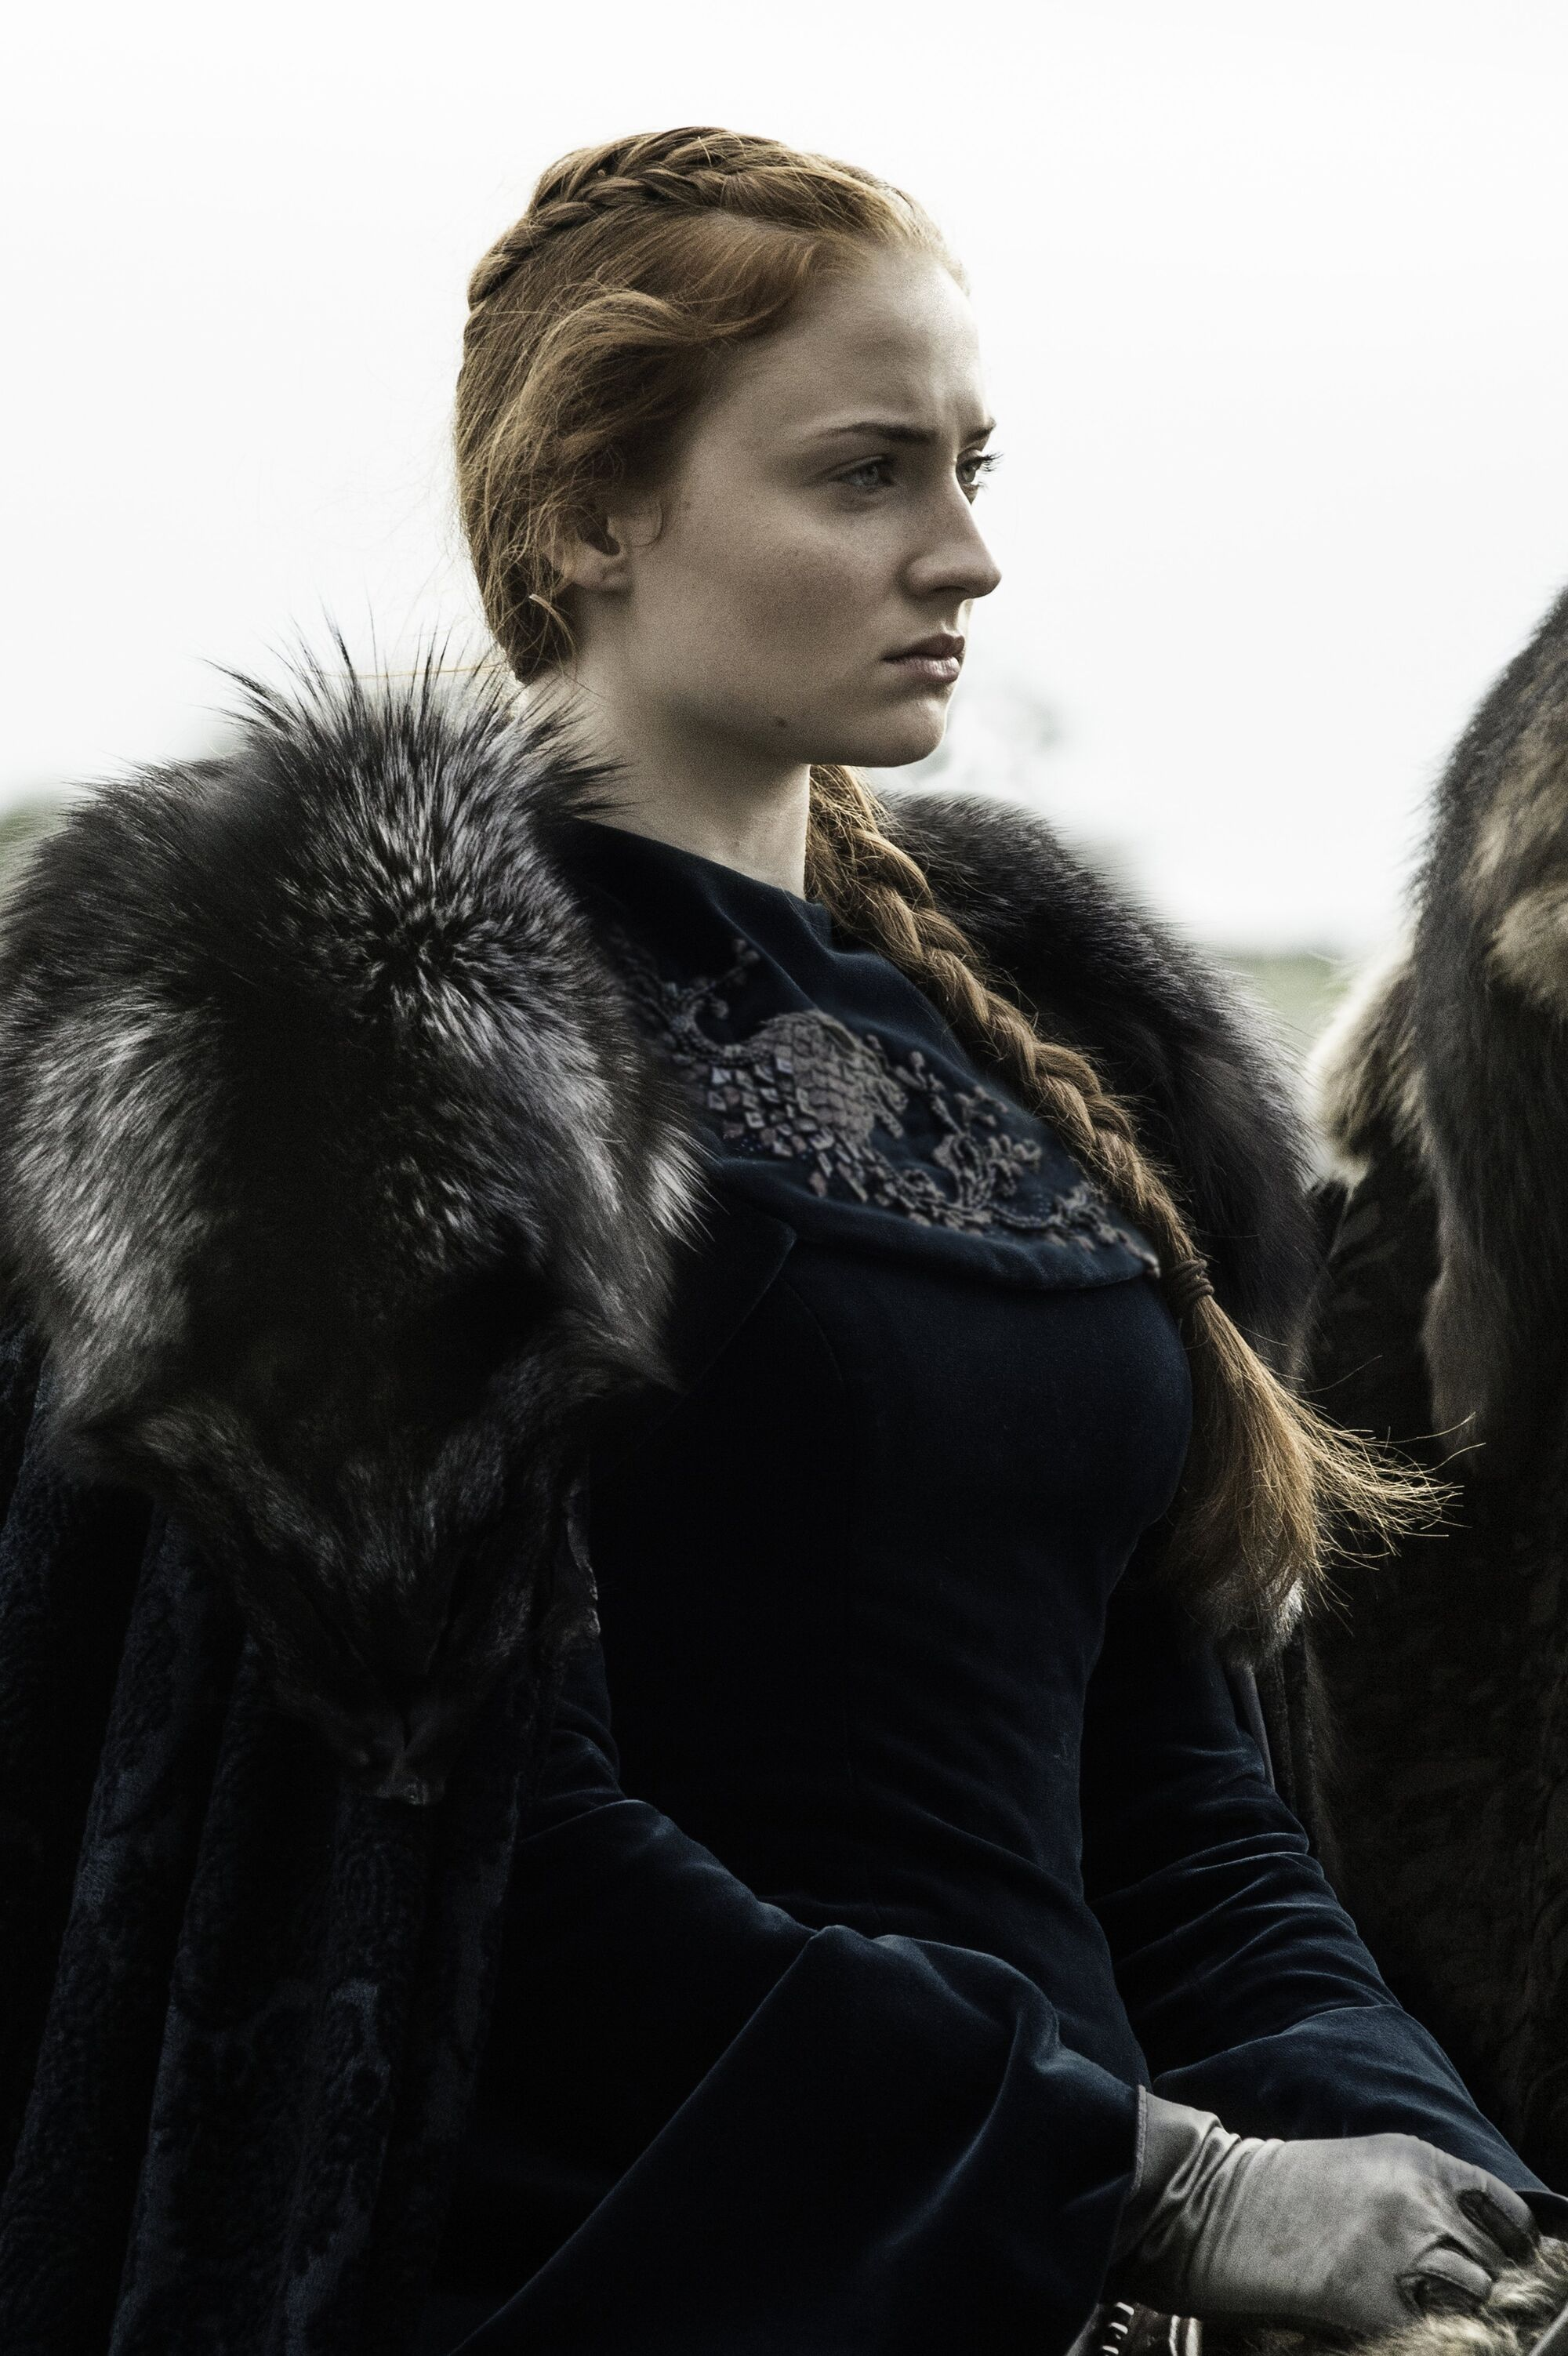 Sansa Stark | Game of Thrones Wiki | Fandom powered by Wikia